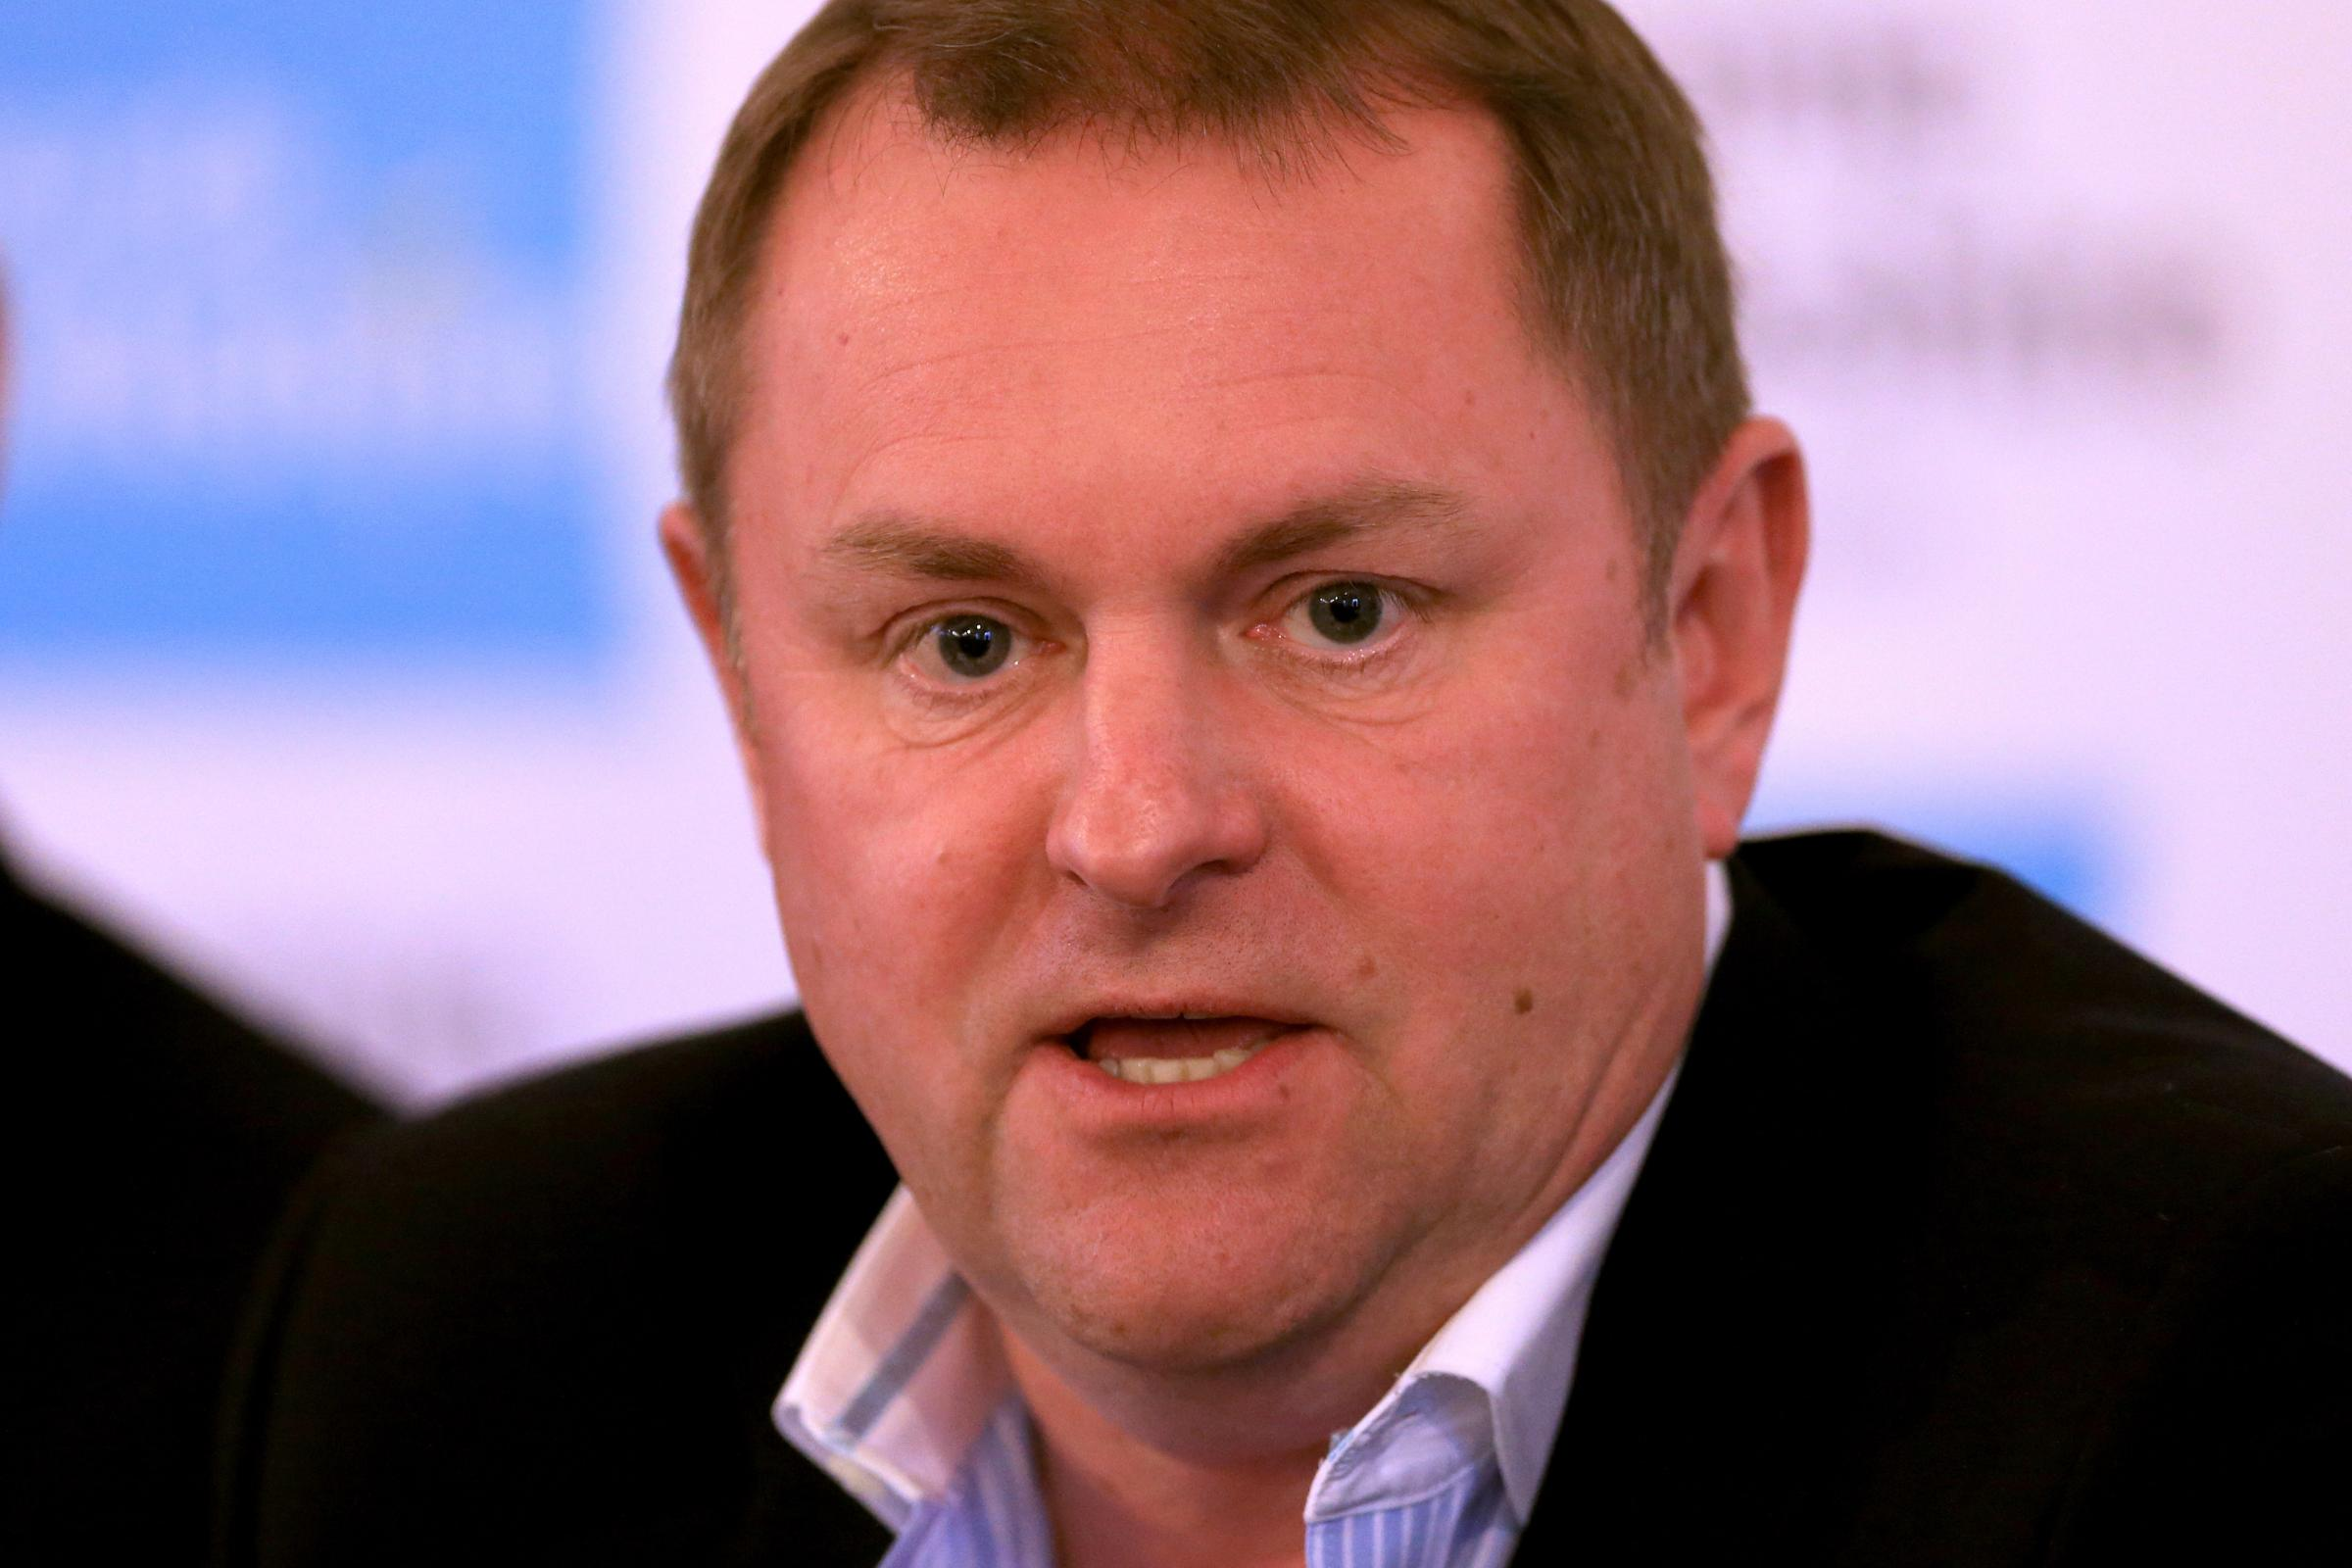 Sir Gary Verity has resigned as chief executive of Welcome to Yorkshire